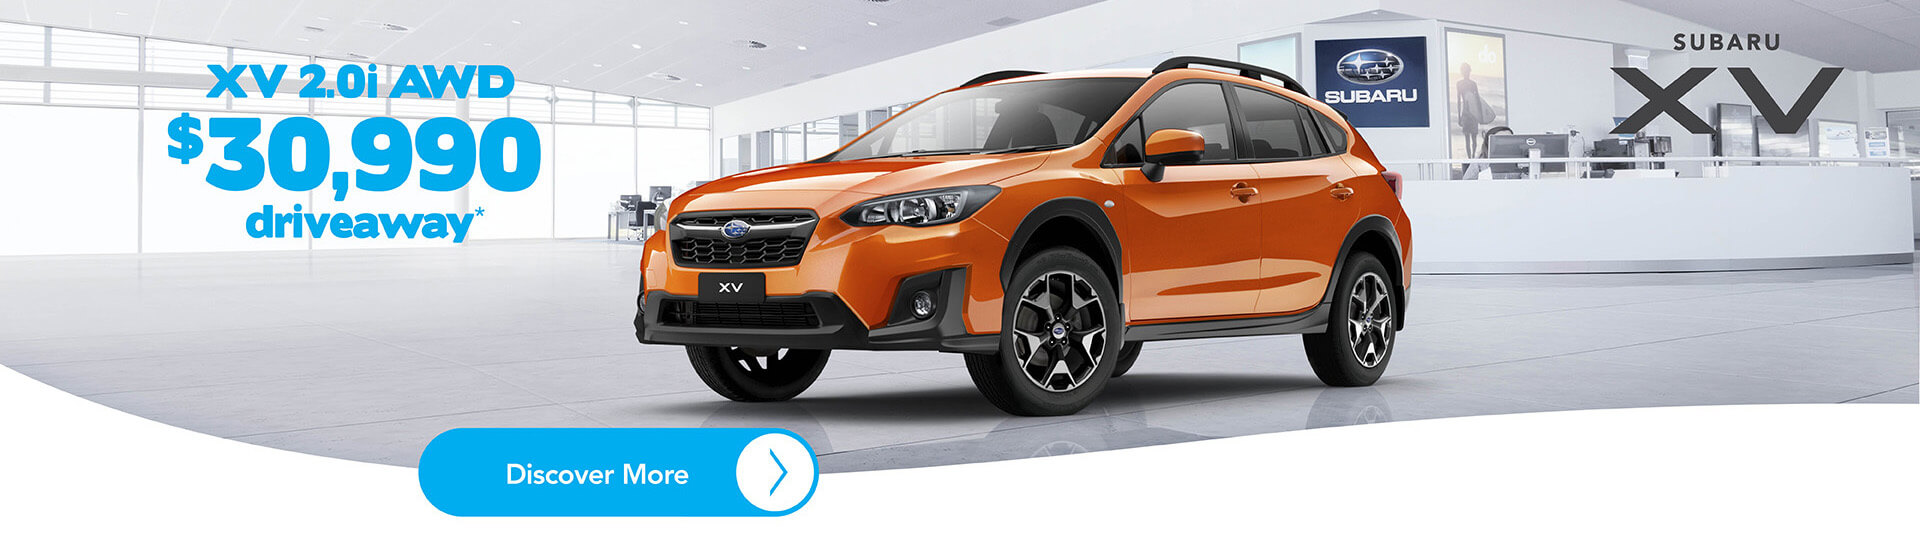 Subaru Offer - Feb 2019 - XV